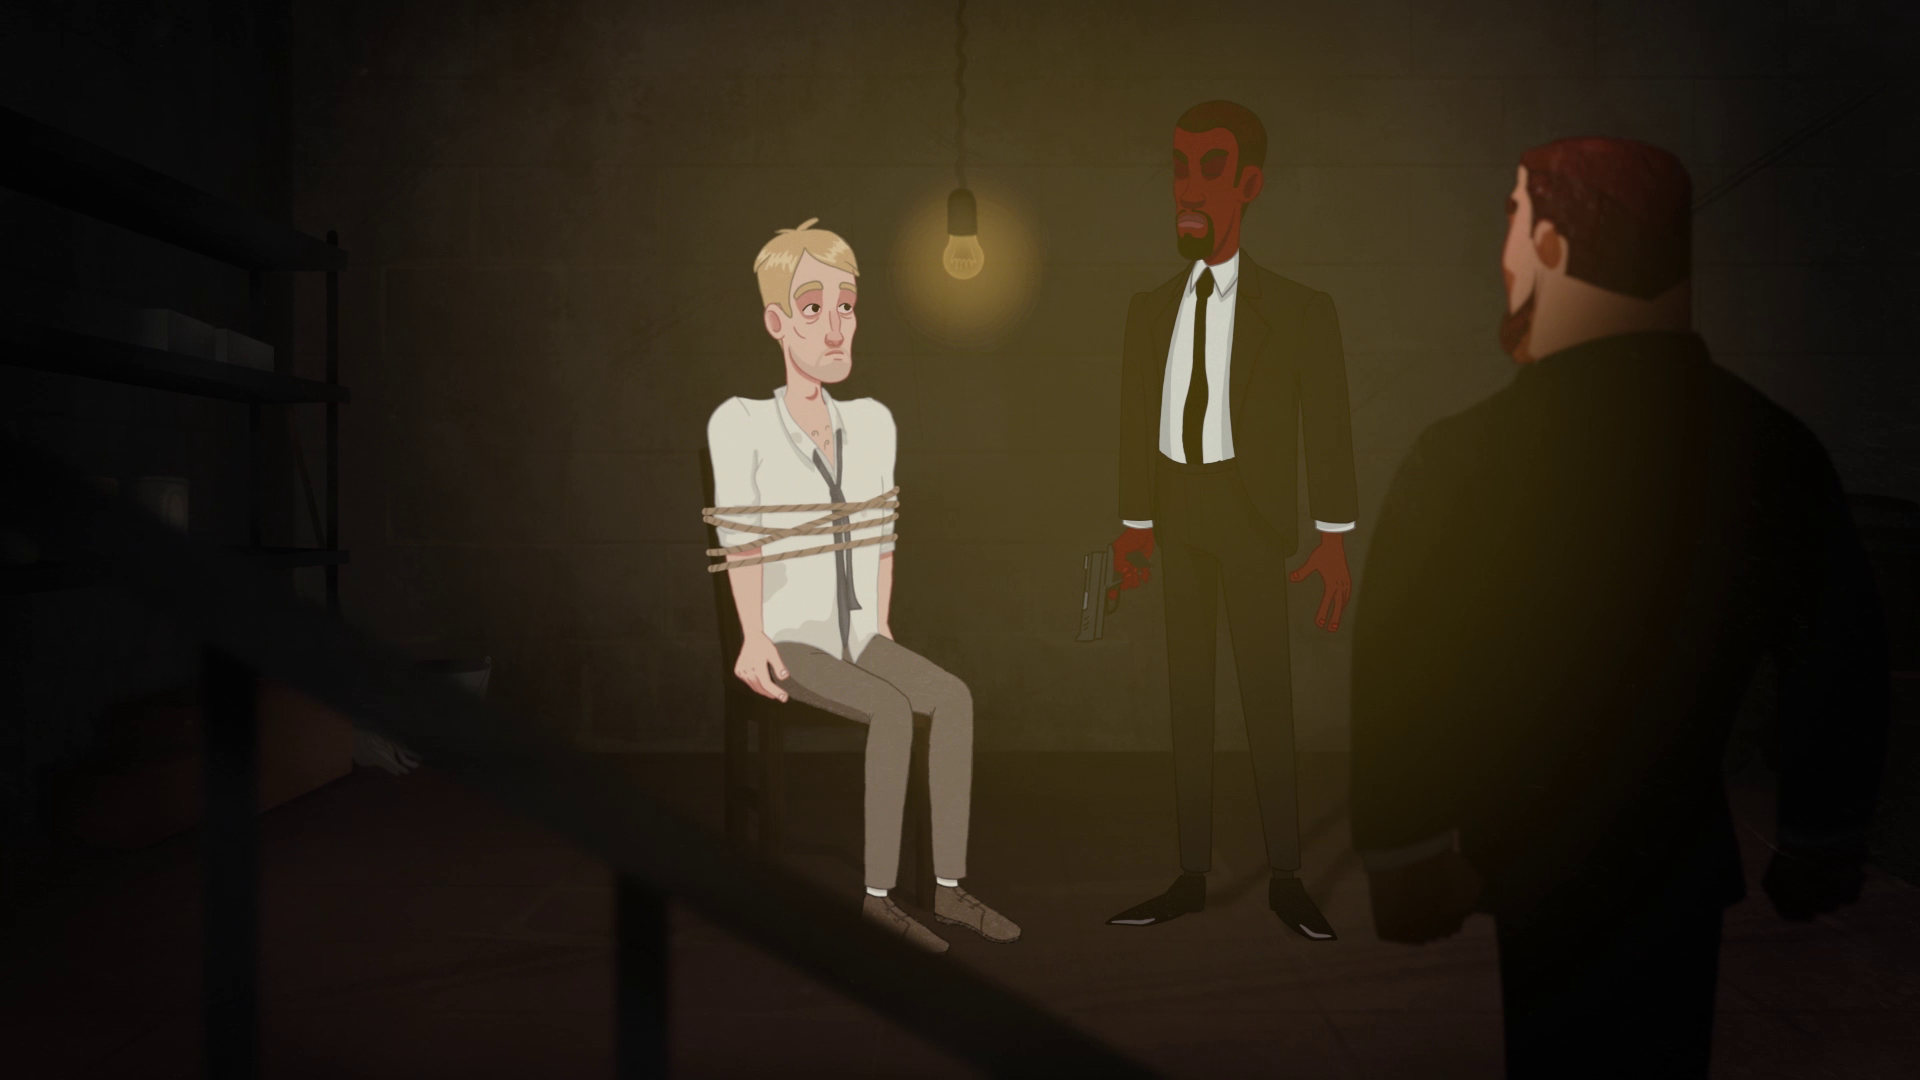 Hostage - 2D Animated Video